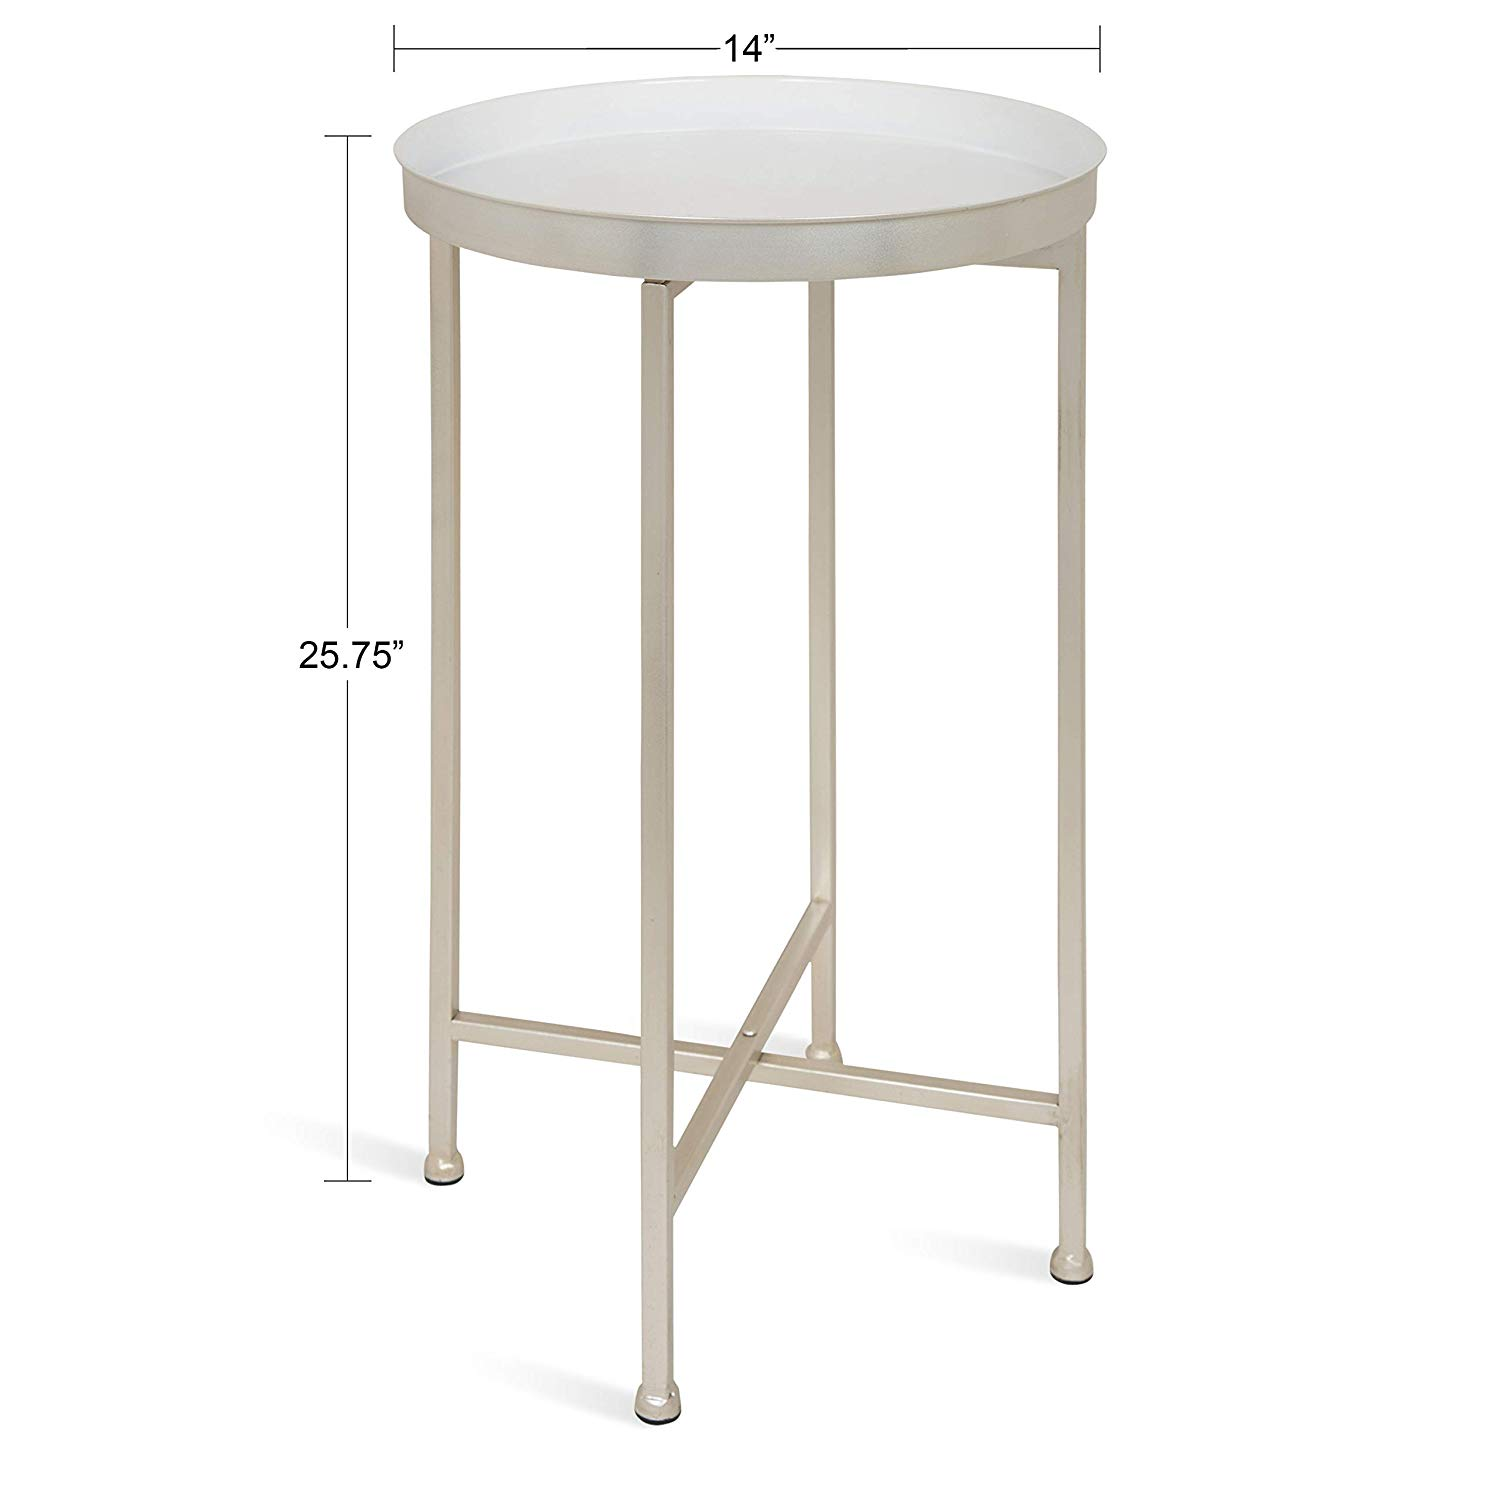 kate and laurel celia round metal foldable tray accent table stool white with silver base kitchen dining circular coffee ikea console drawers fifties style furniture crystal lamps